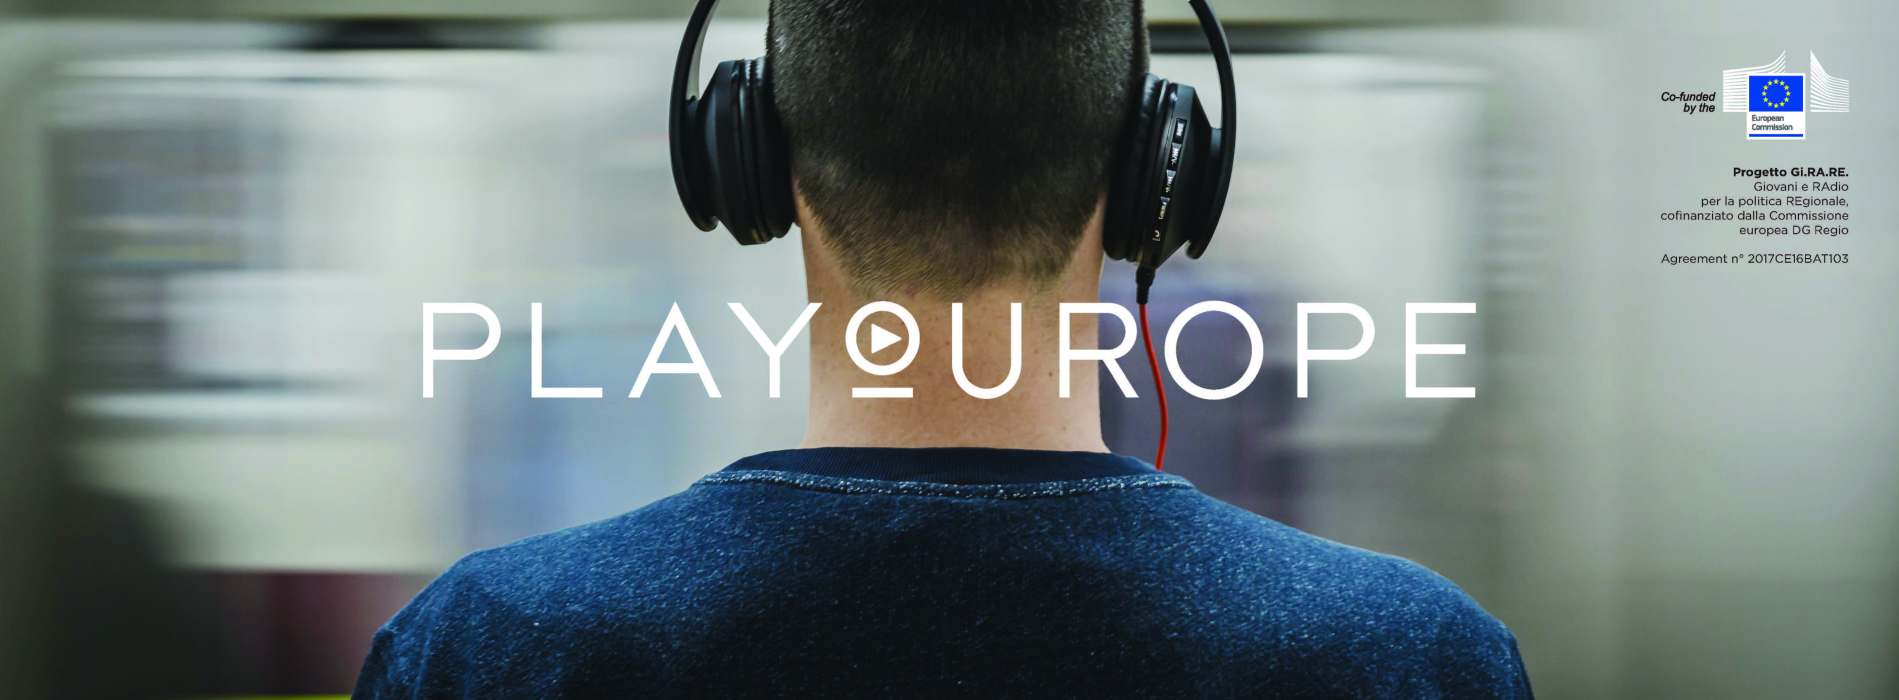 l'officina musicale playourope